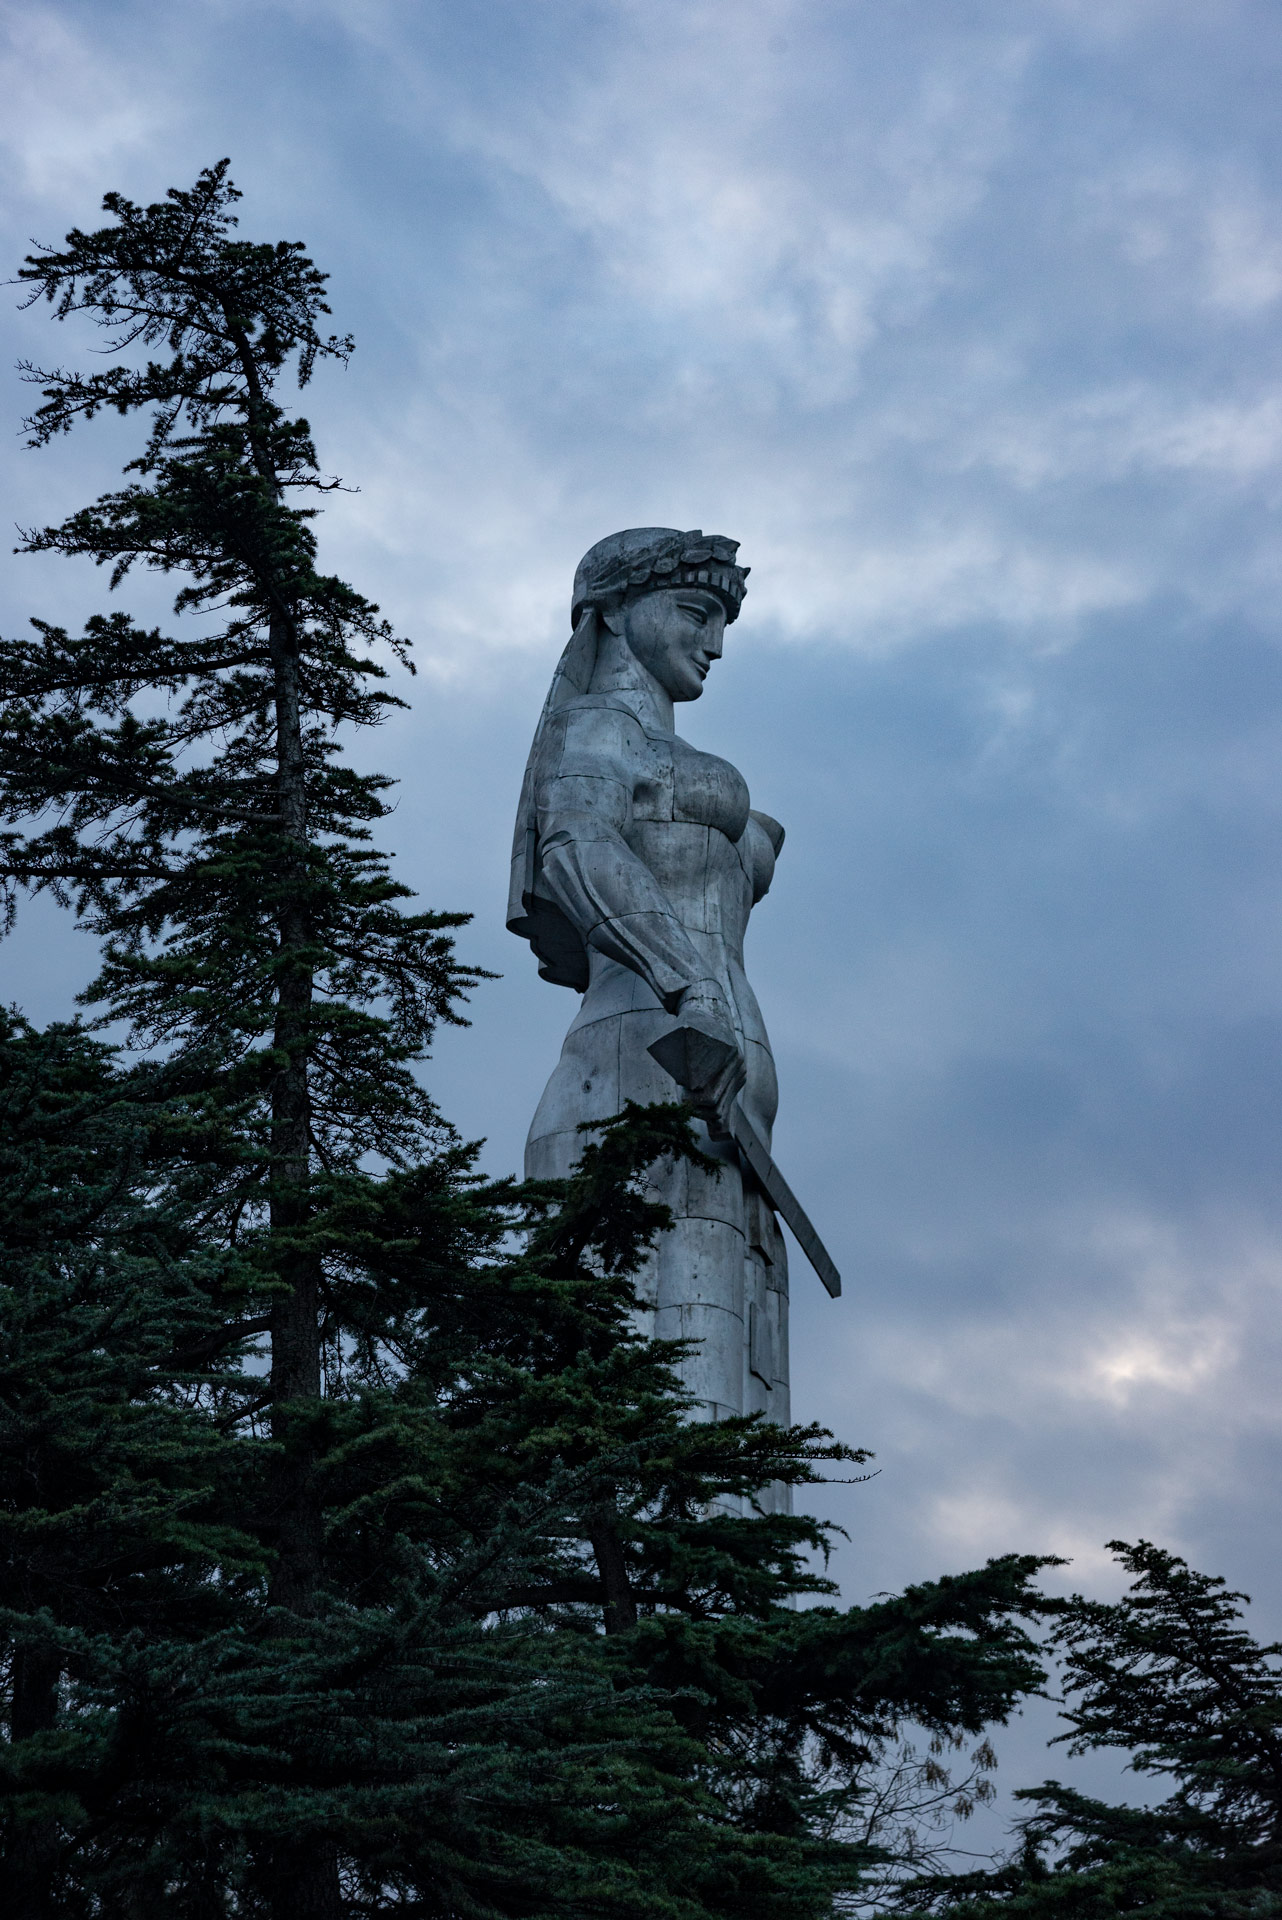 The imposing statue of Mother Georgia from atop the hill.